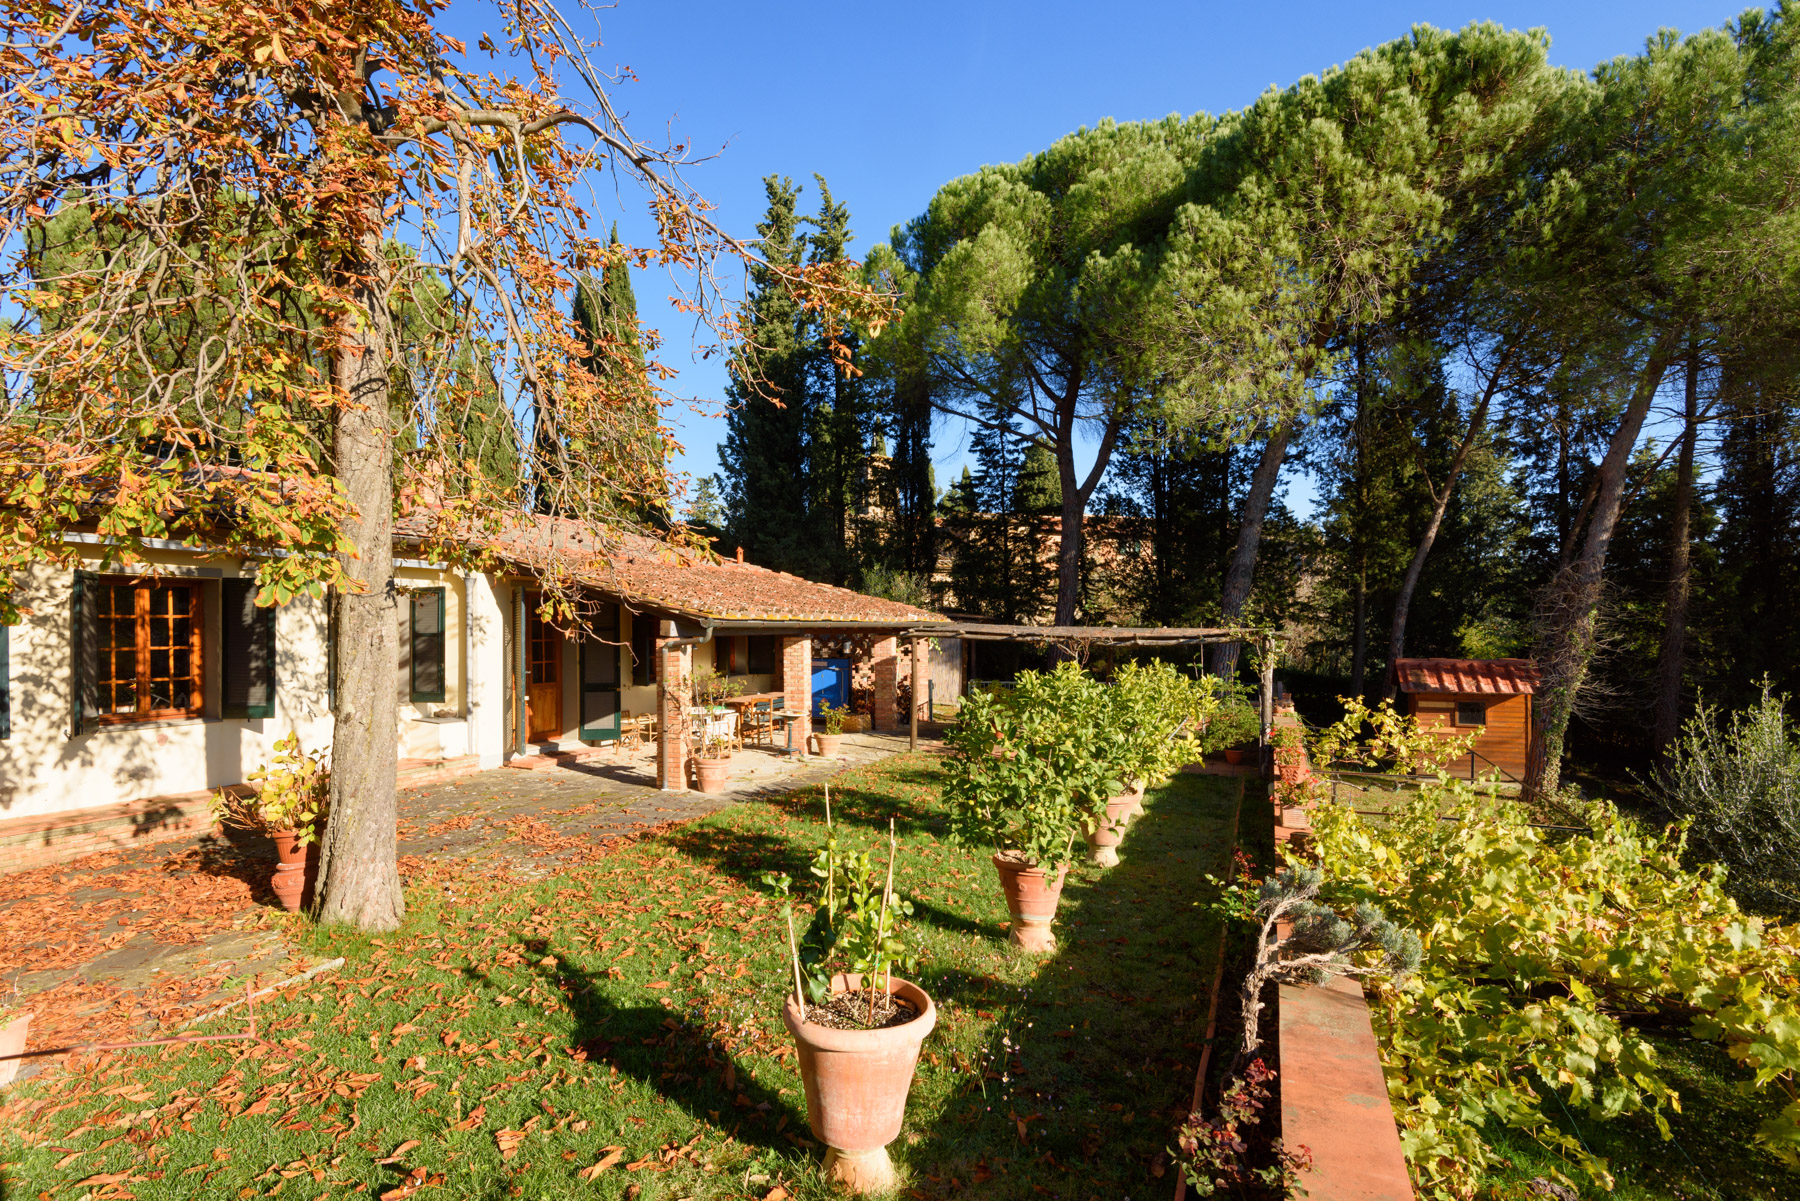 Single Family Home for Sale at Marvelous villa in the Chianti countryside Via di Pancole Greve In Chianti, Florence 50022 Italy